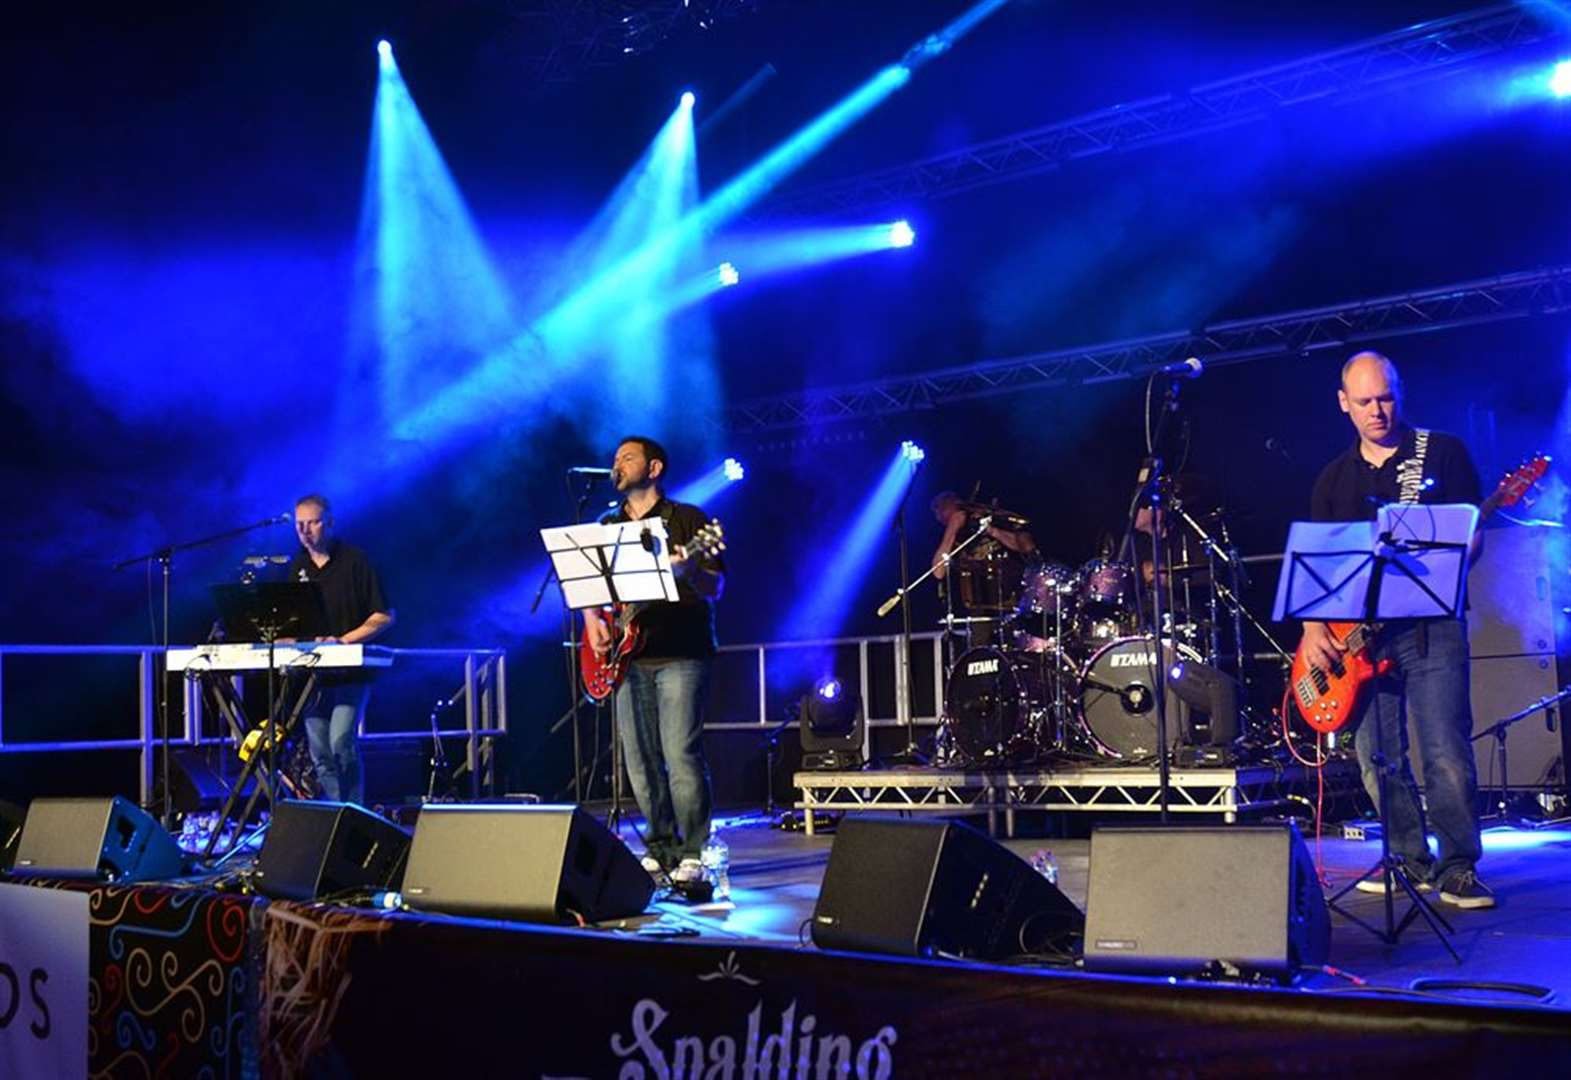 Spalding Festival is just around the corner